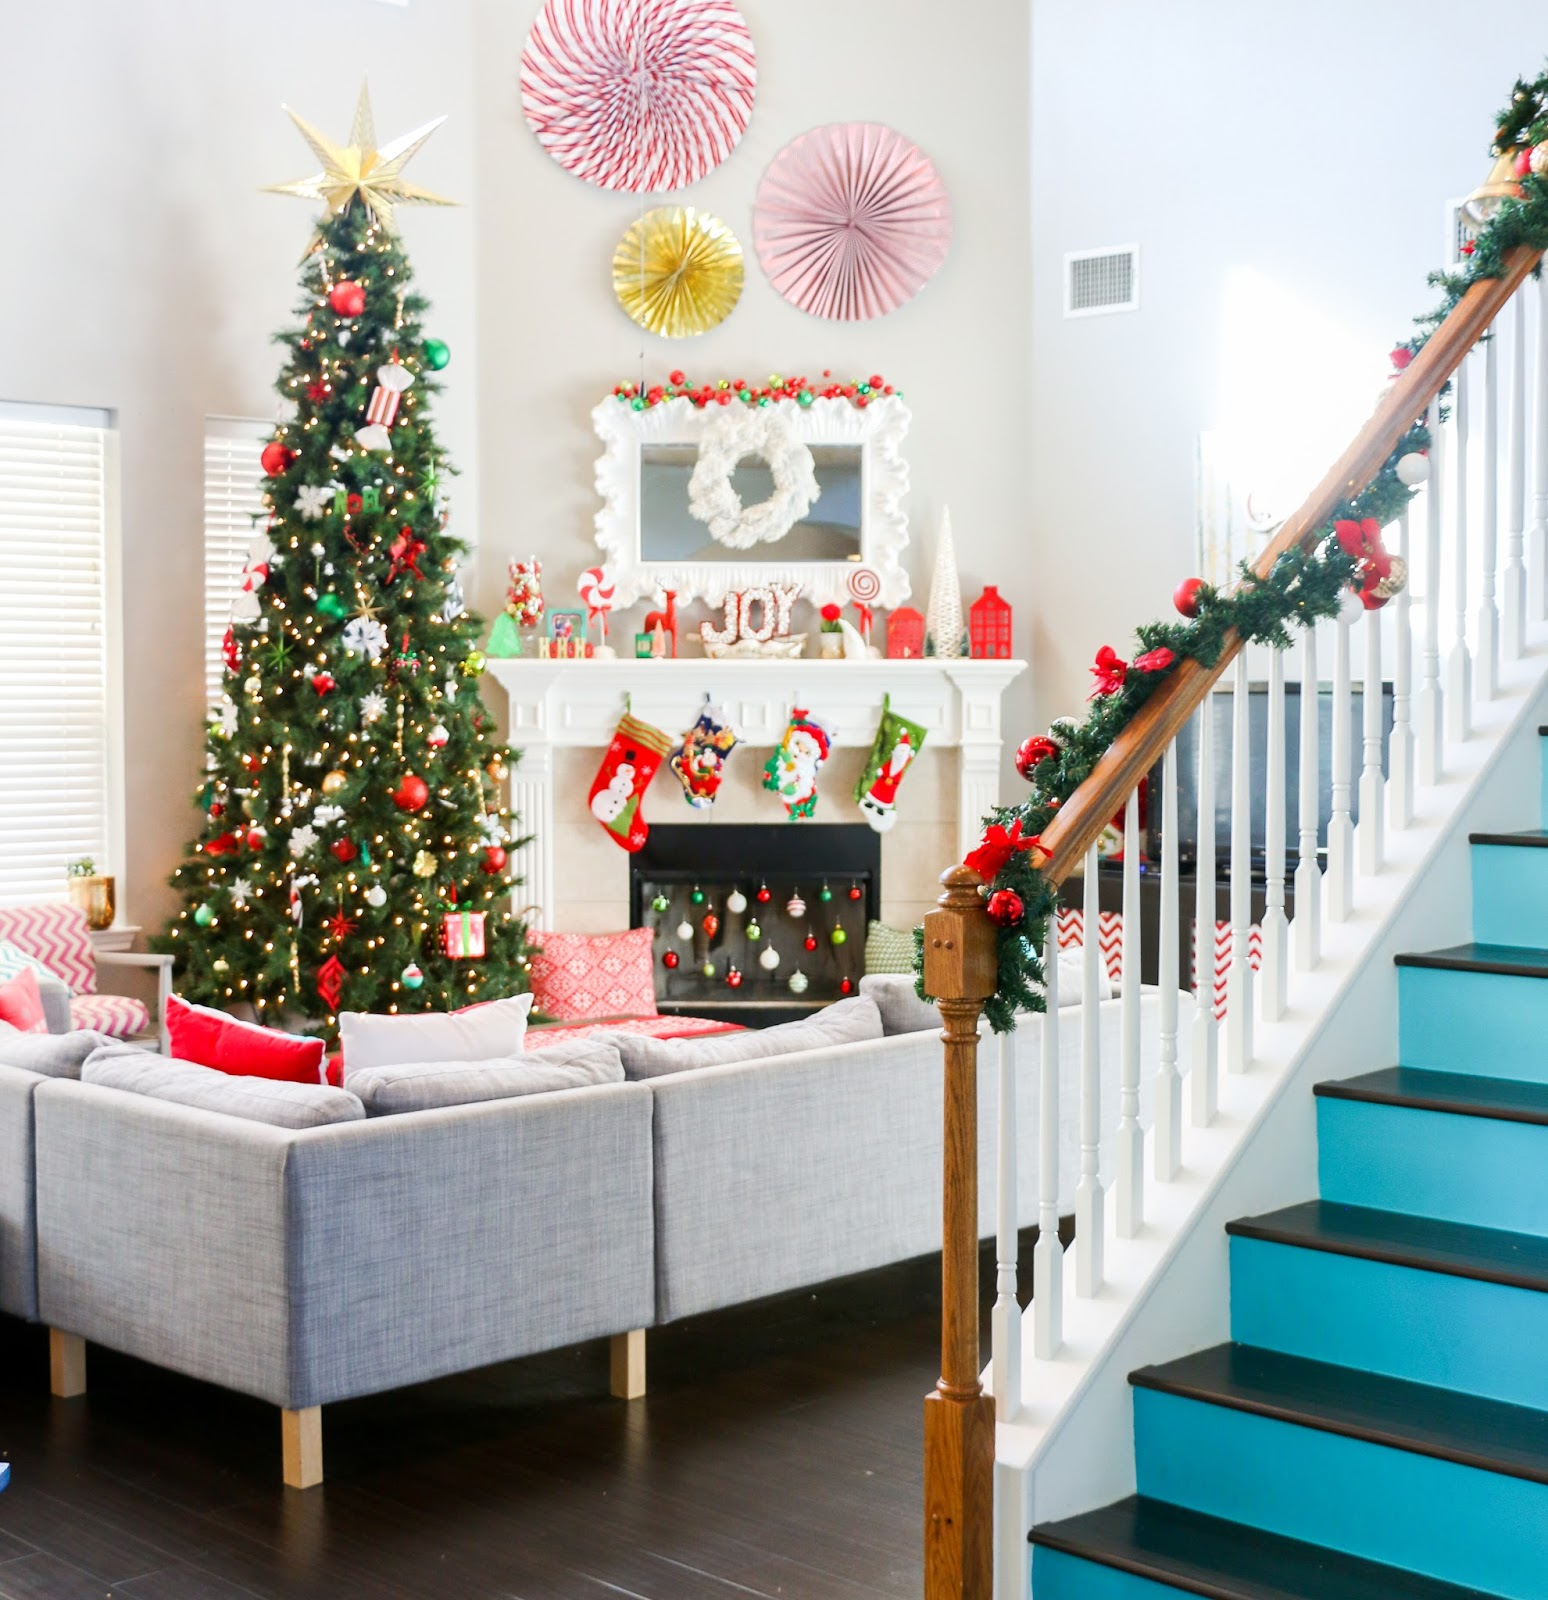 Decorate My Home For Christmas How To Your House Roselawnlutheran